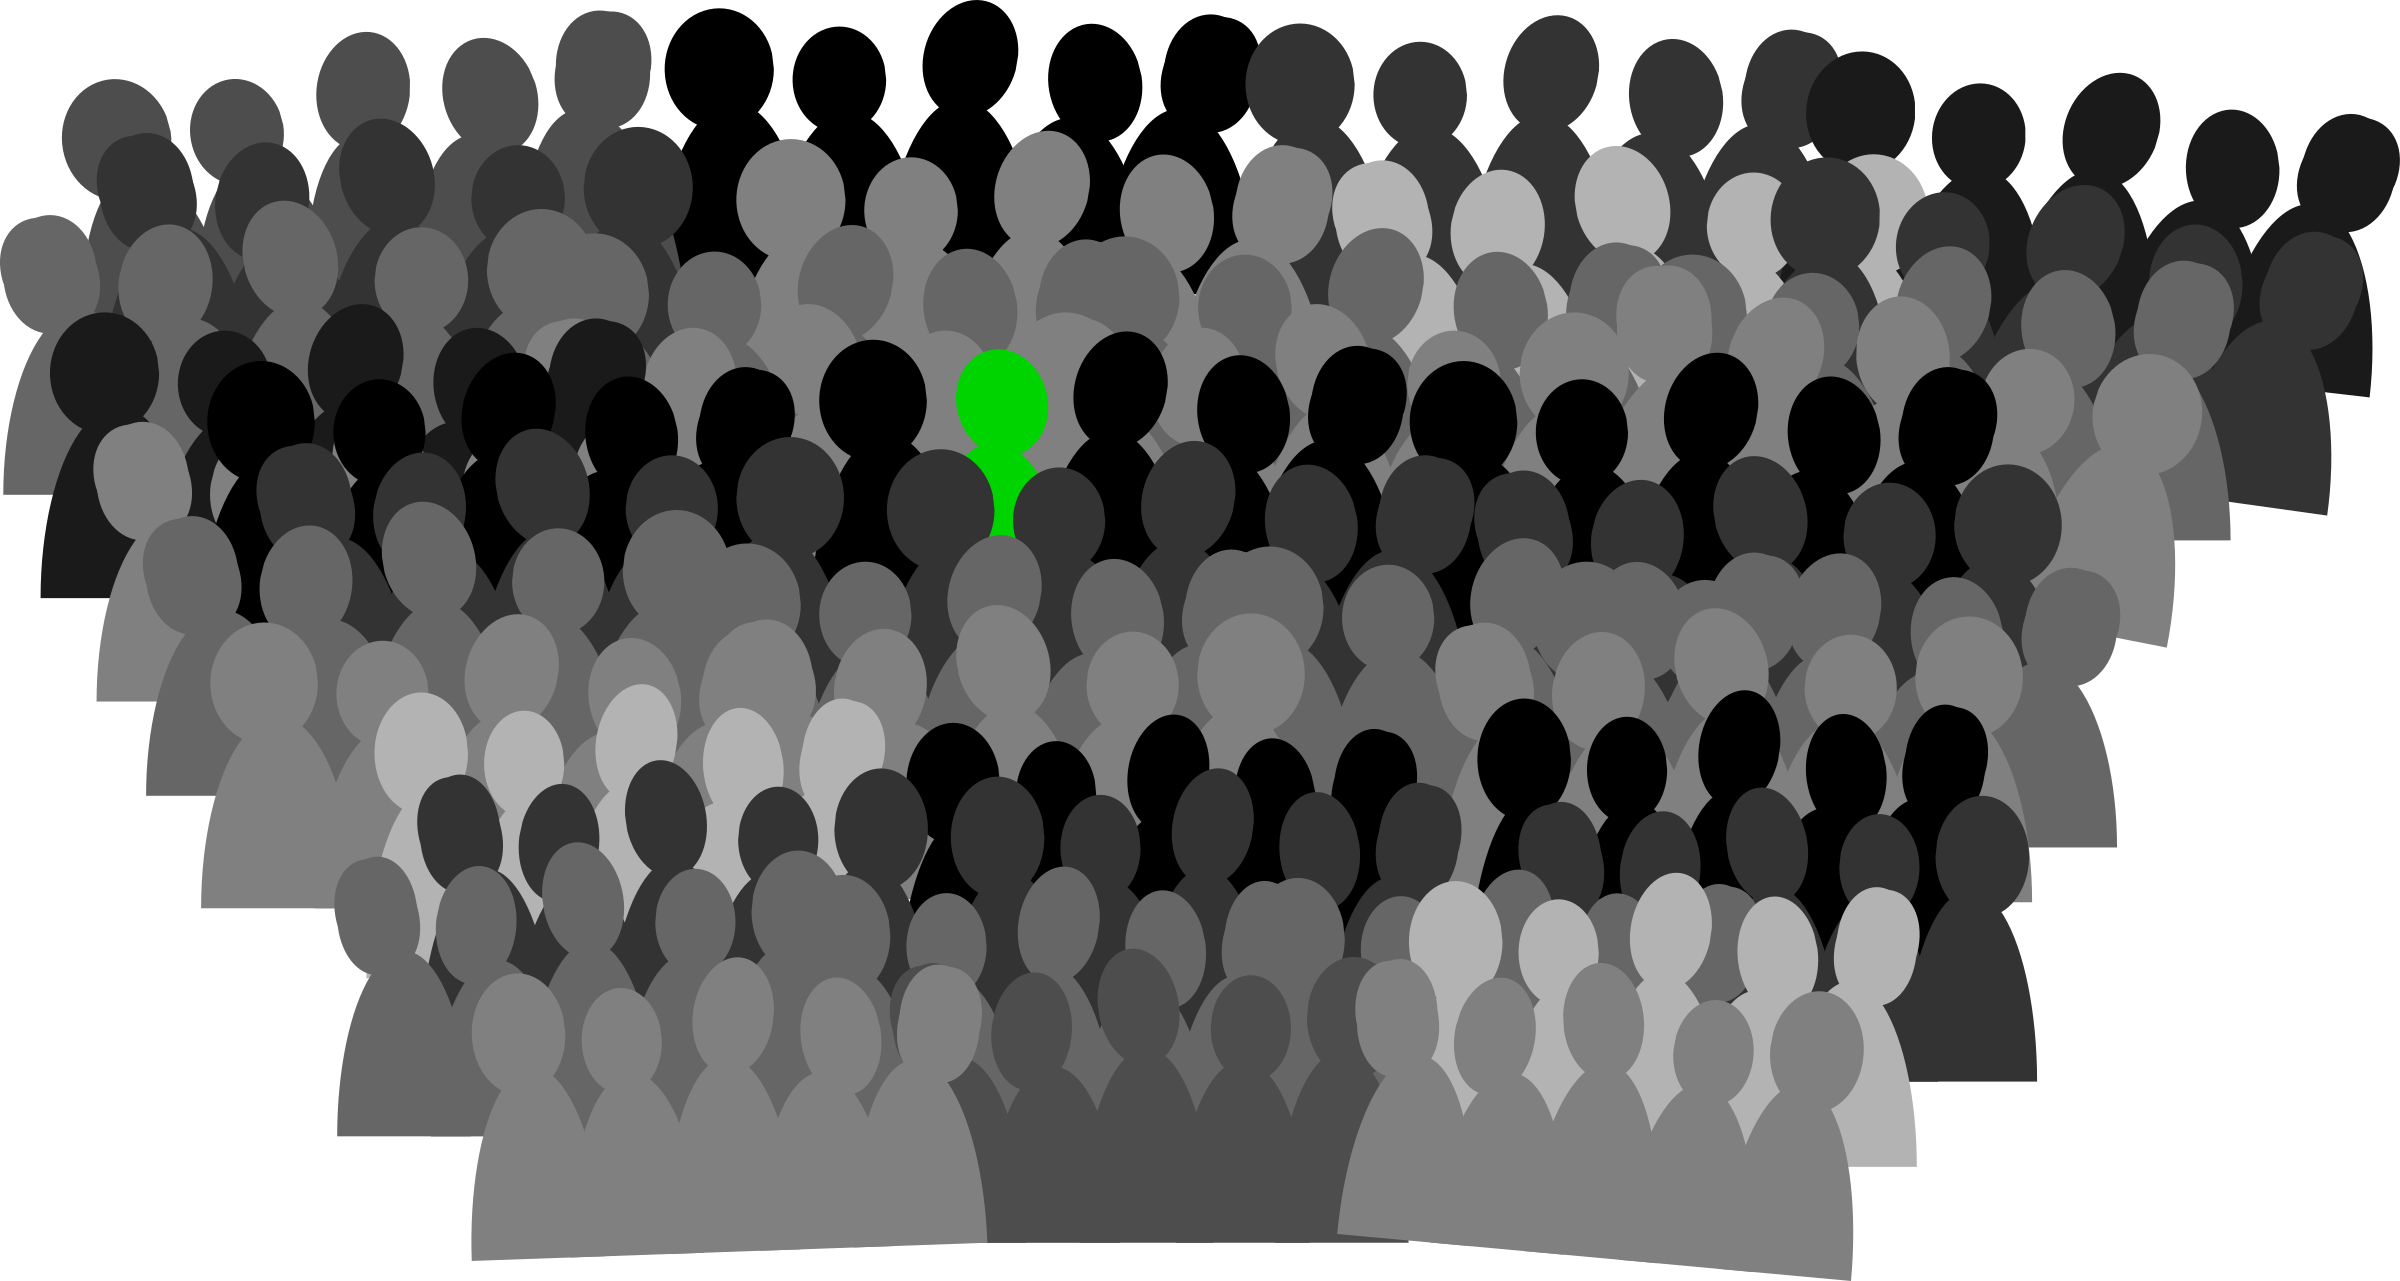 jpg stock Crowd clipart. Panda free images audience.